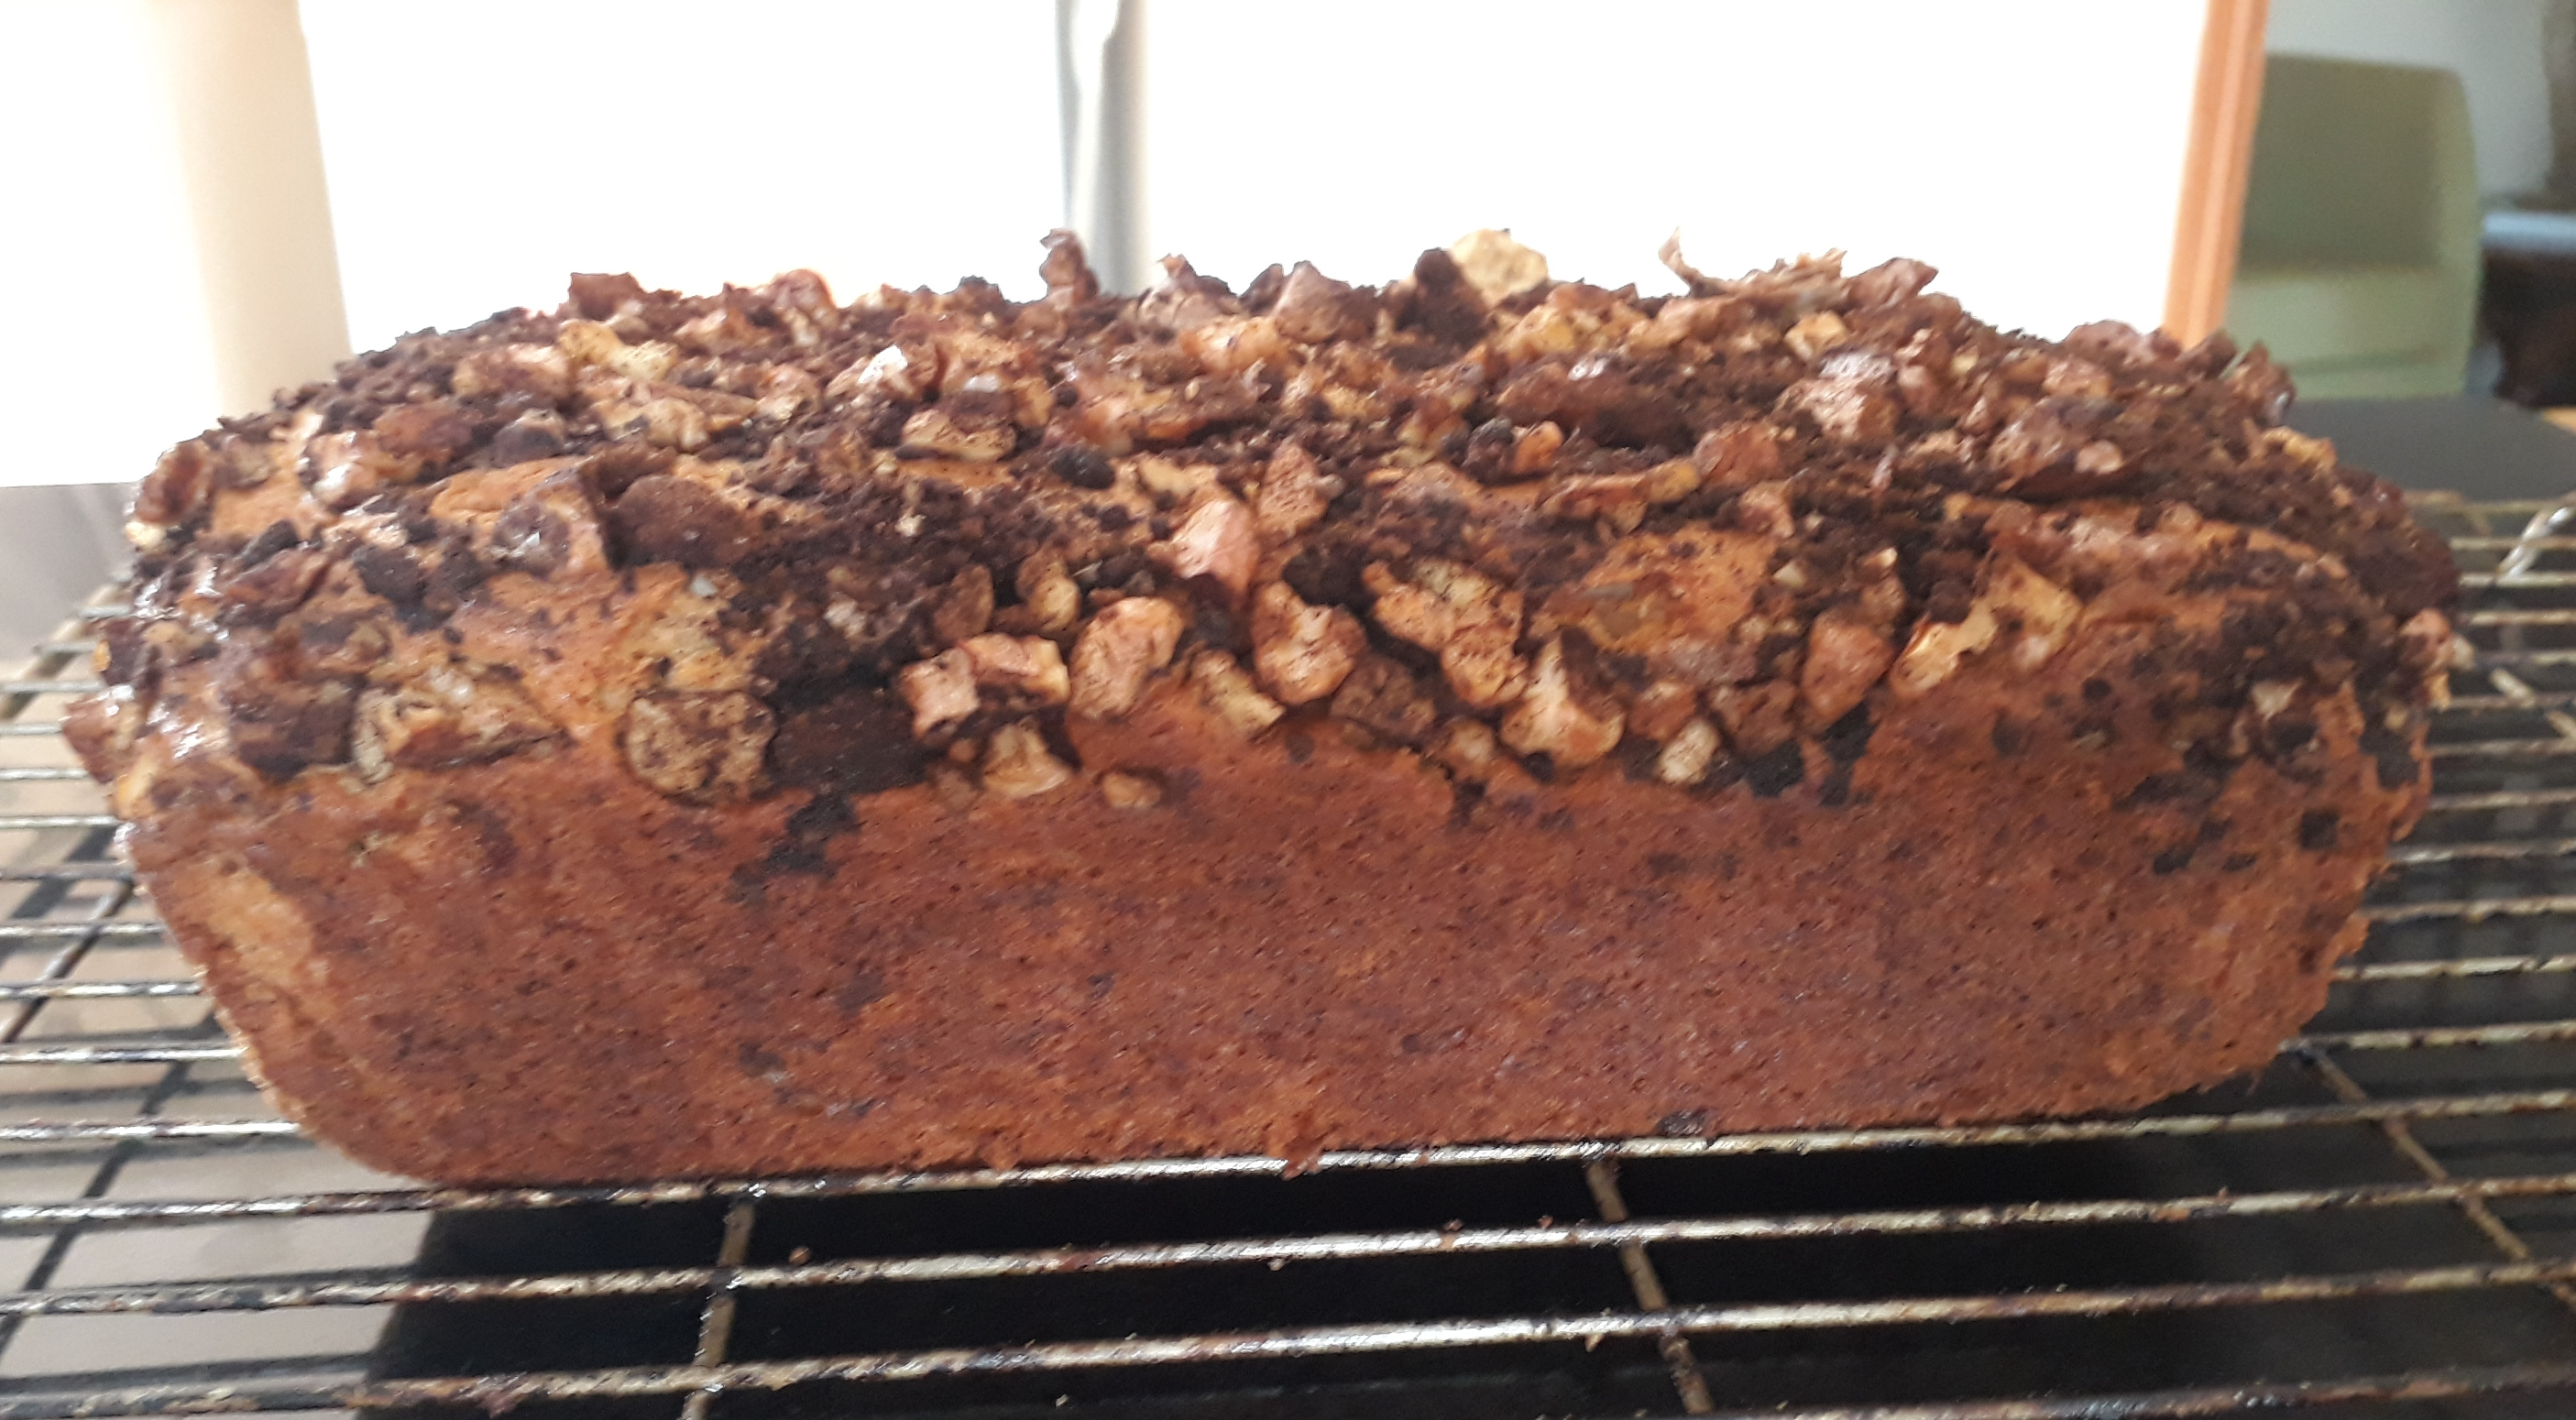 Coffee, Banana and Walnut Cake (Finished